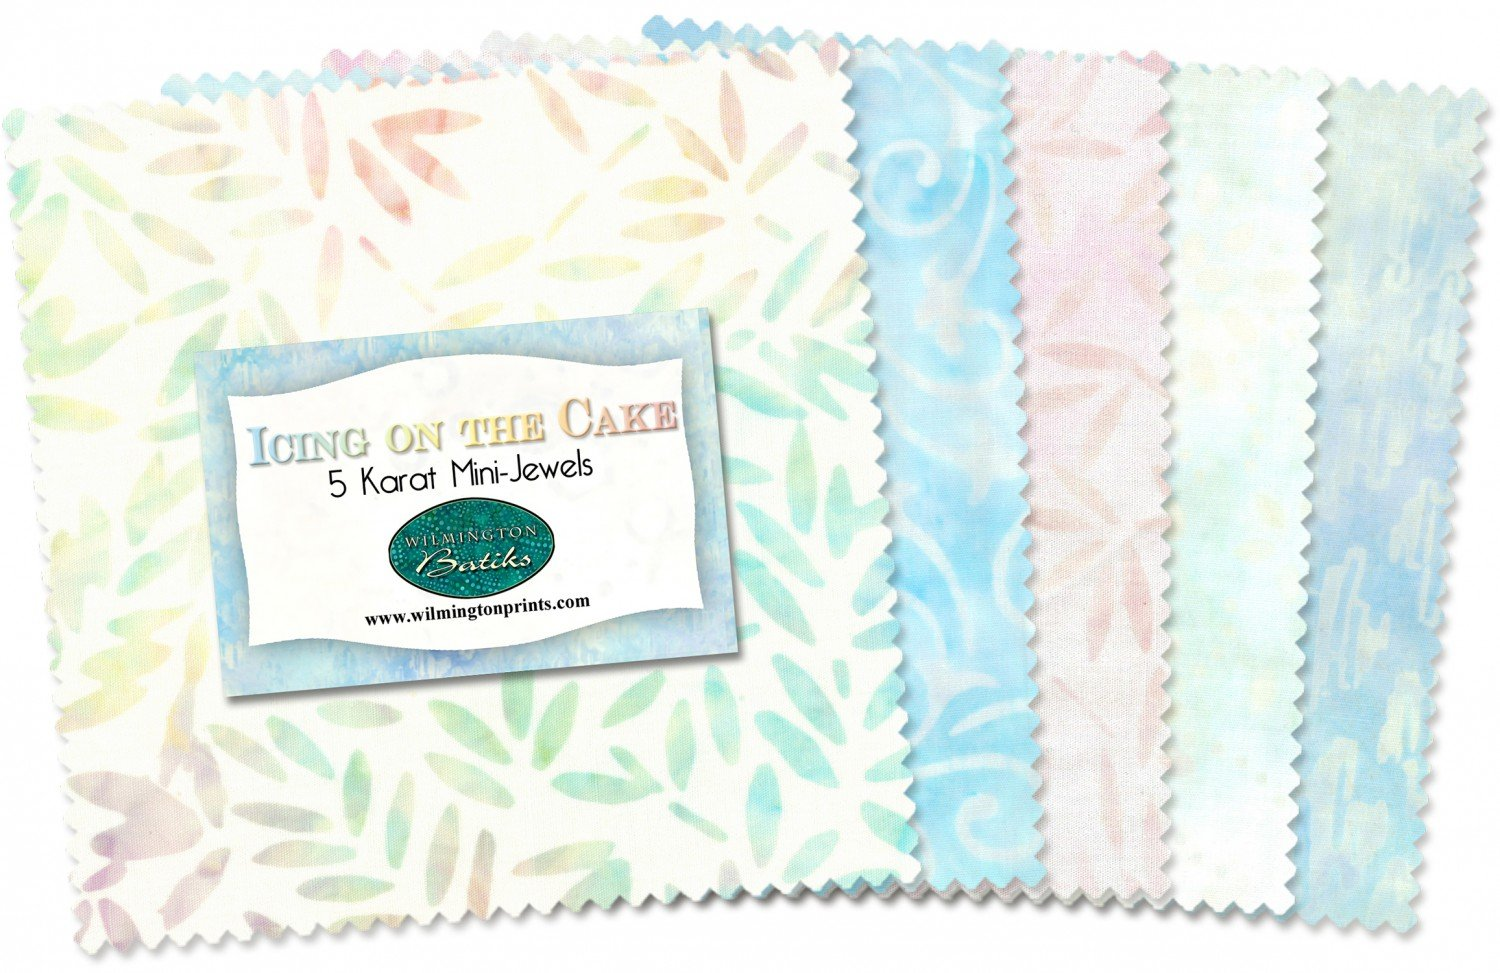 Icing on the Cake Batiks 5 squares - 24pcs